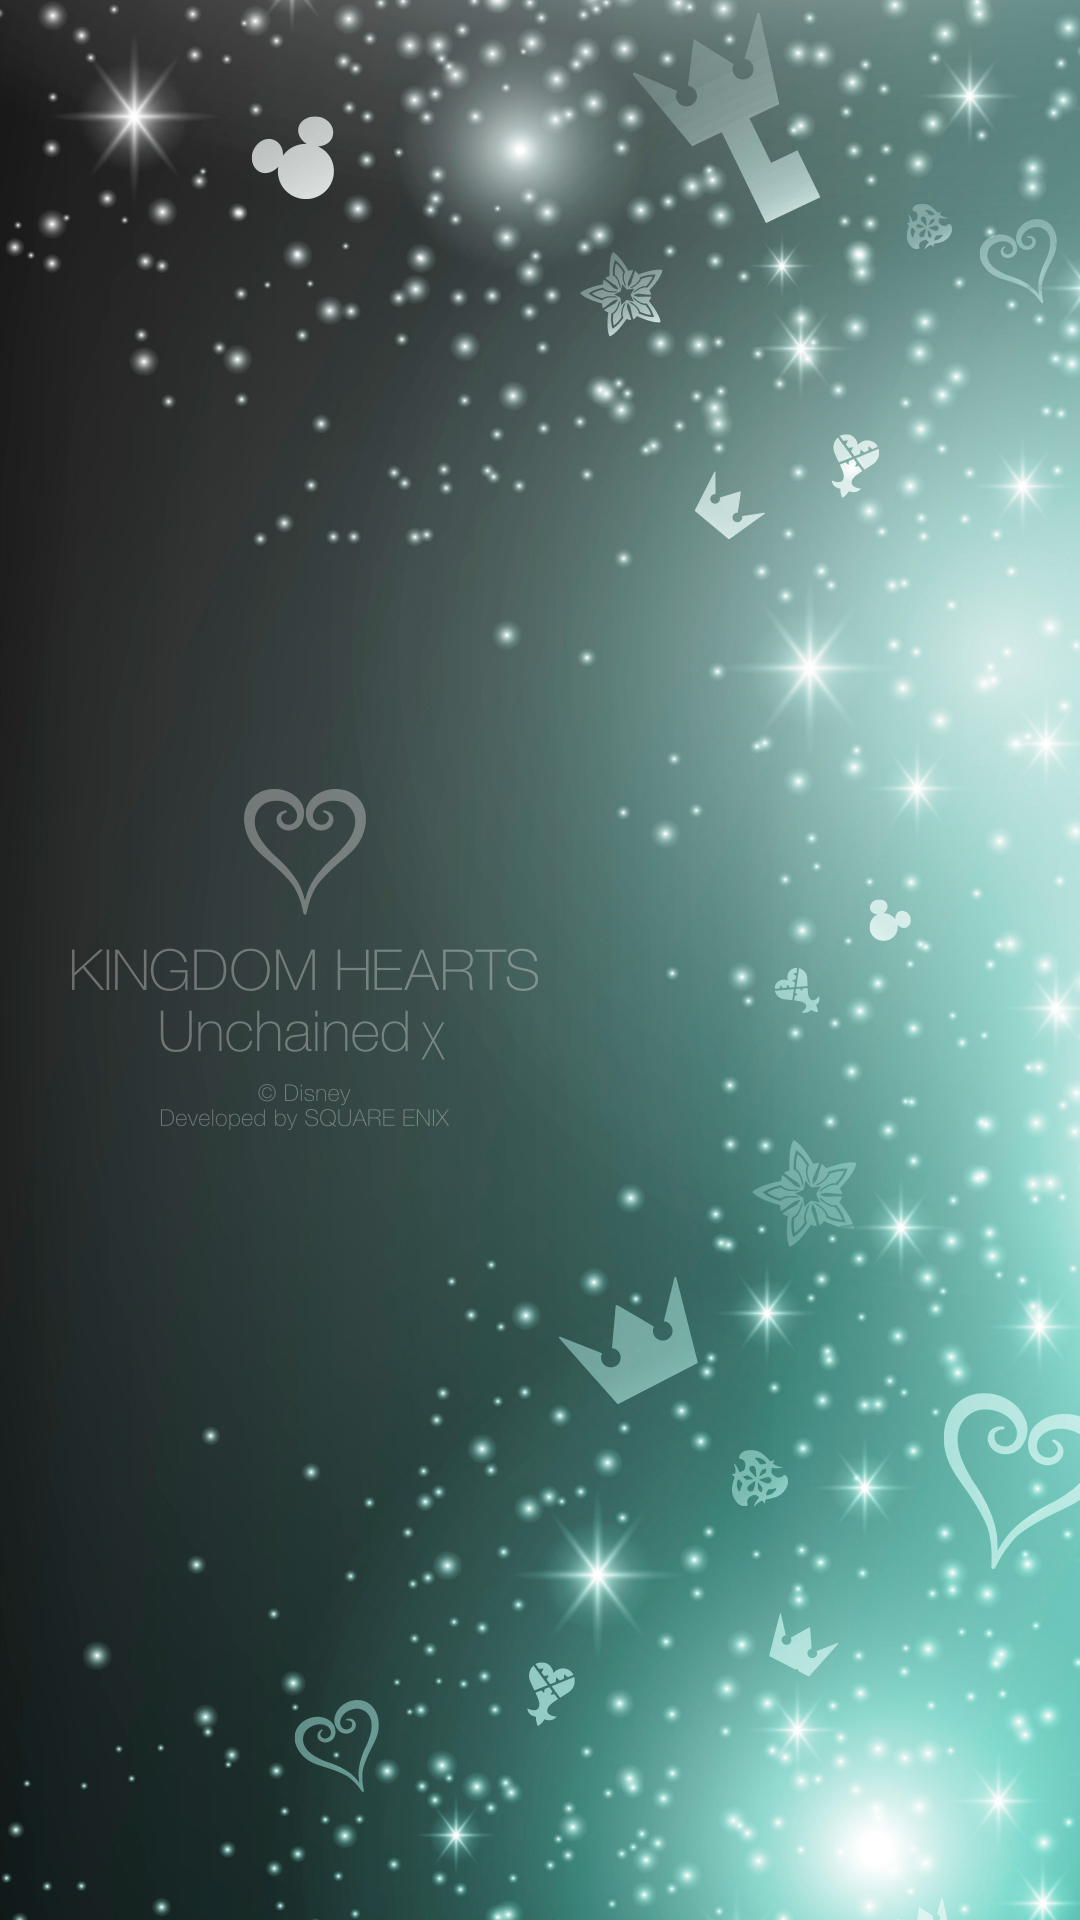 Wallpapers kingdom hearts union cross kingdom hearts insider voltagebd Images